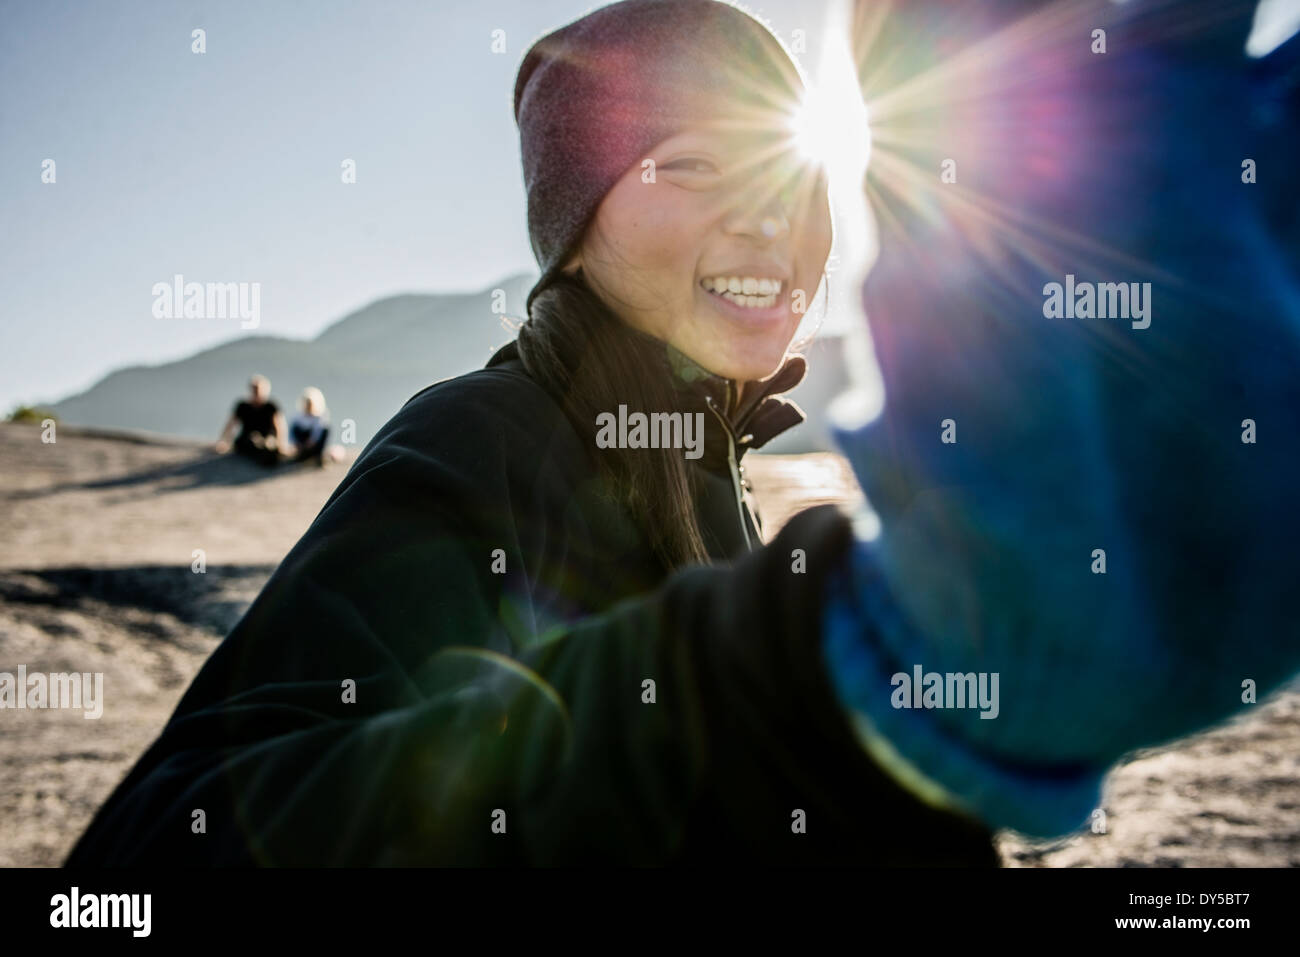 Portrait de jeune femme timide randonneur, Squamish, British Columbia, Canada Photo Stock